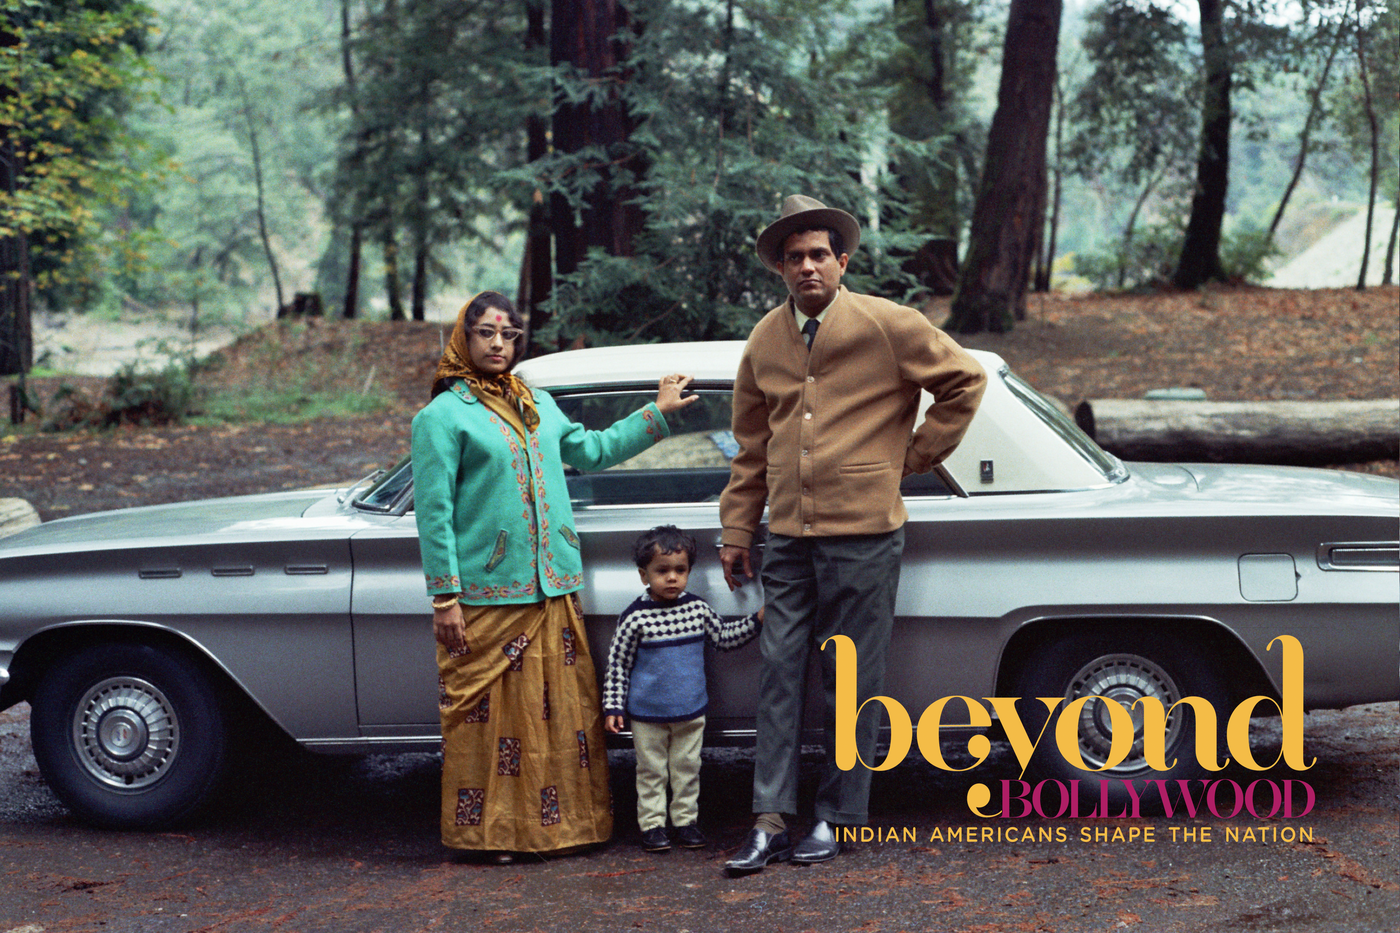 Decorated Indian tabla player Pandit Shankar Ghosh and noted Indian classical vocalist Shrimati Sanjukta Ghosh with Vikram (Boomba) Ghosh at Samuel P. Taylor State Park, Lagunita, Calif., ca. 1970.